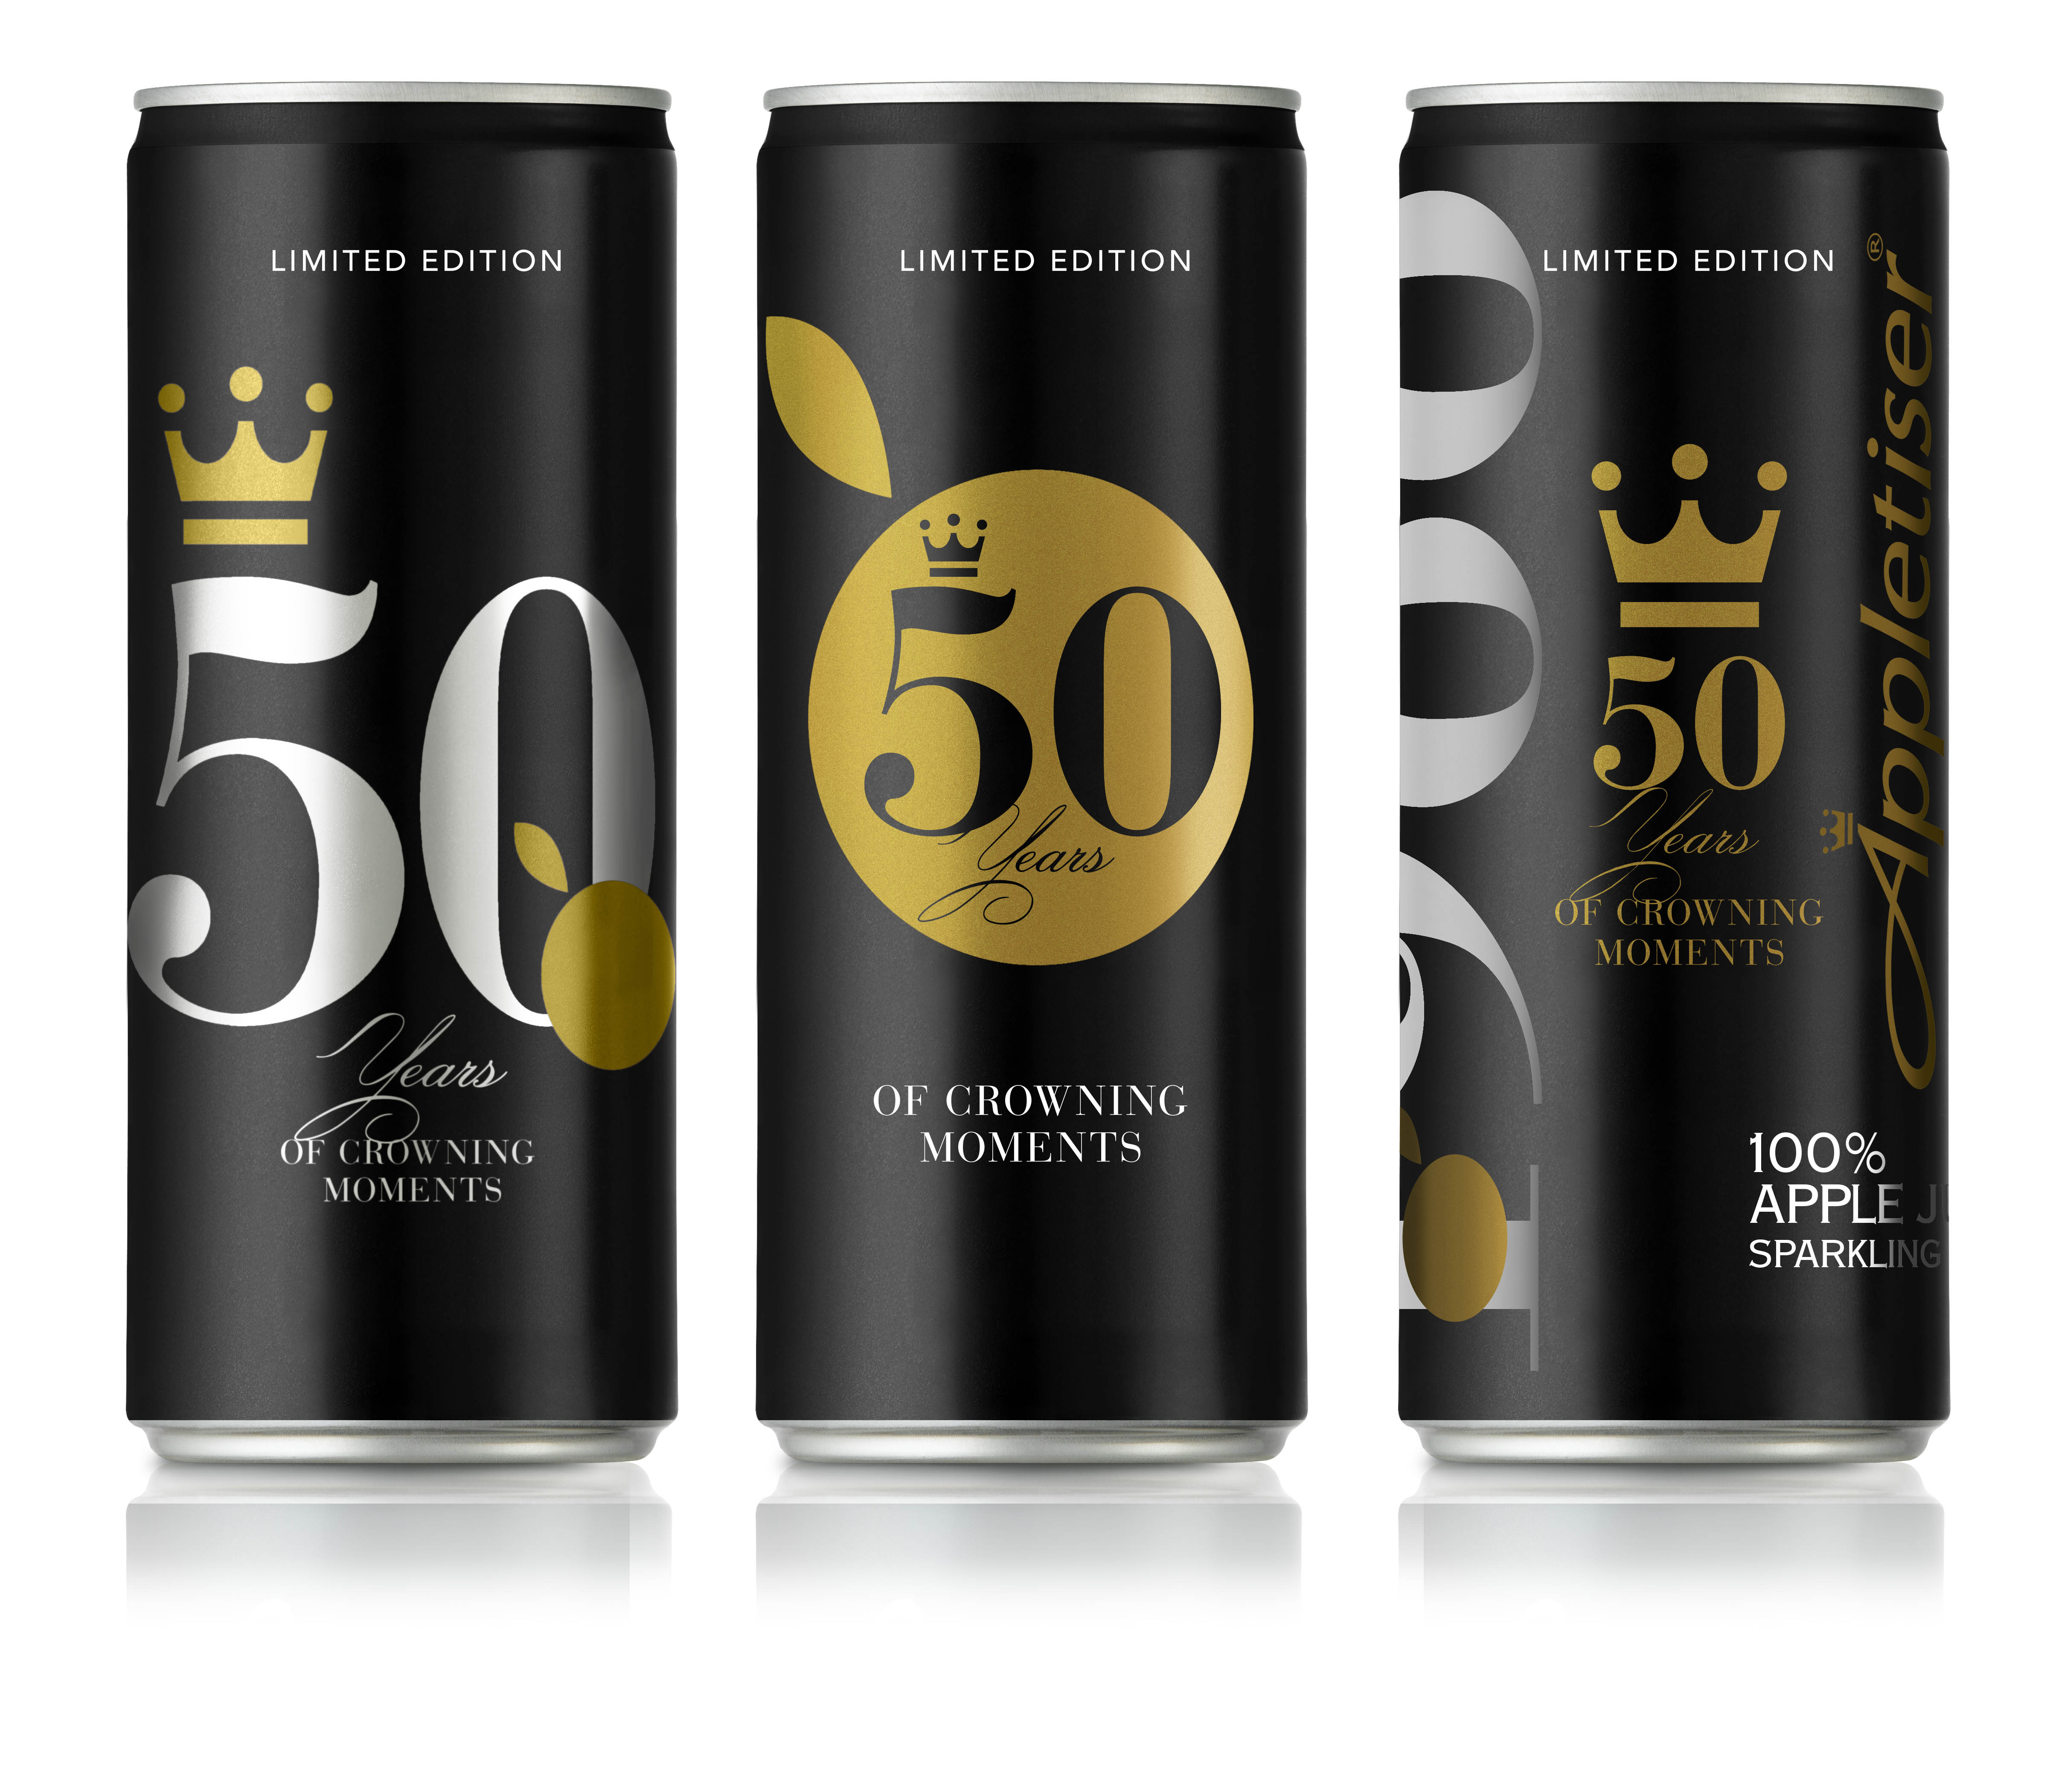 Appletiser 50 Years Cans